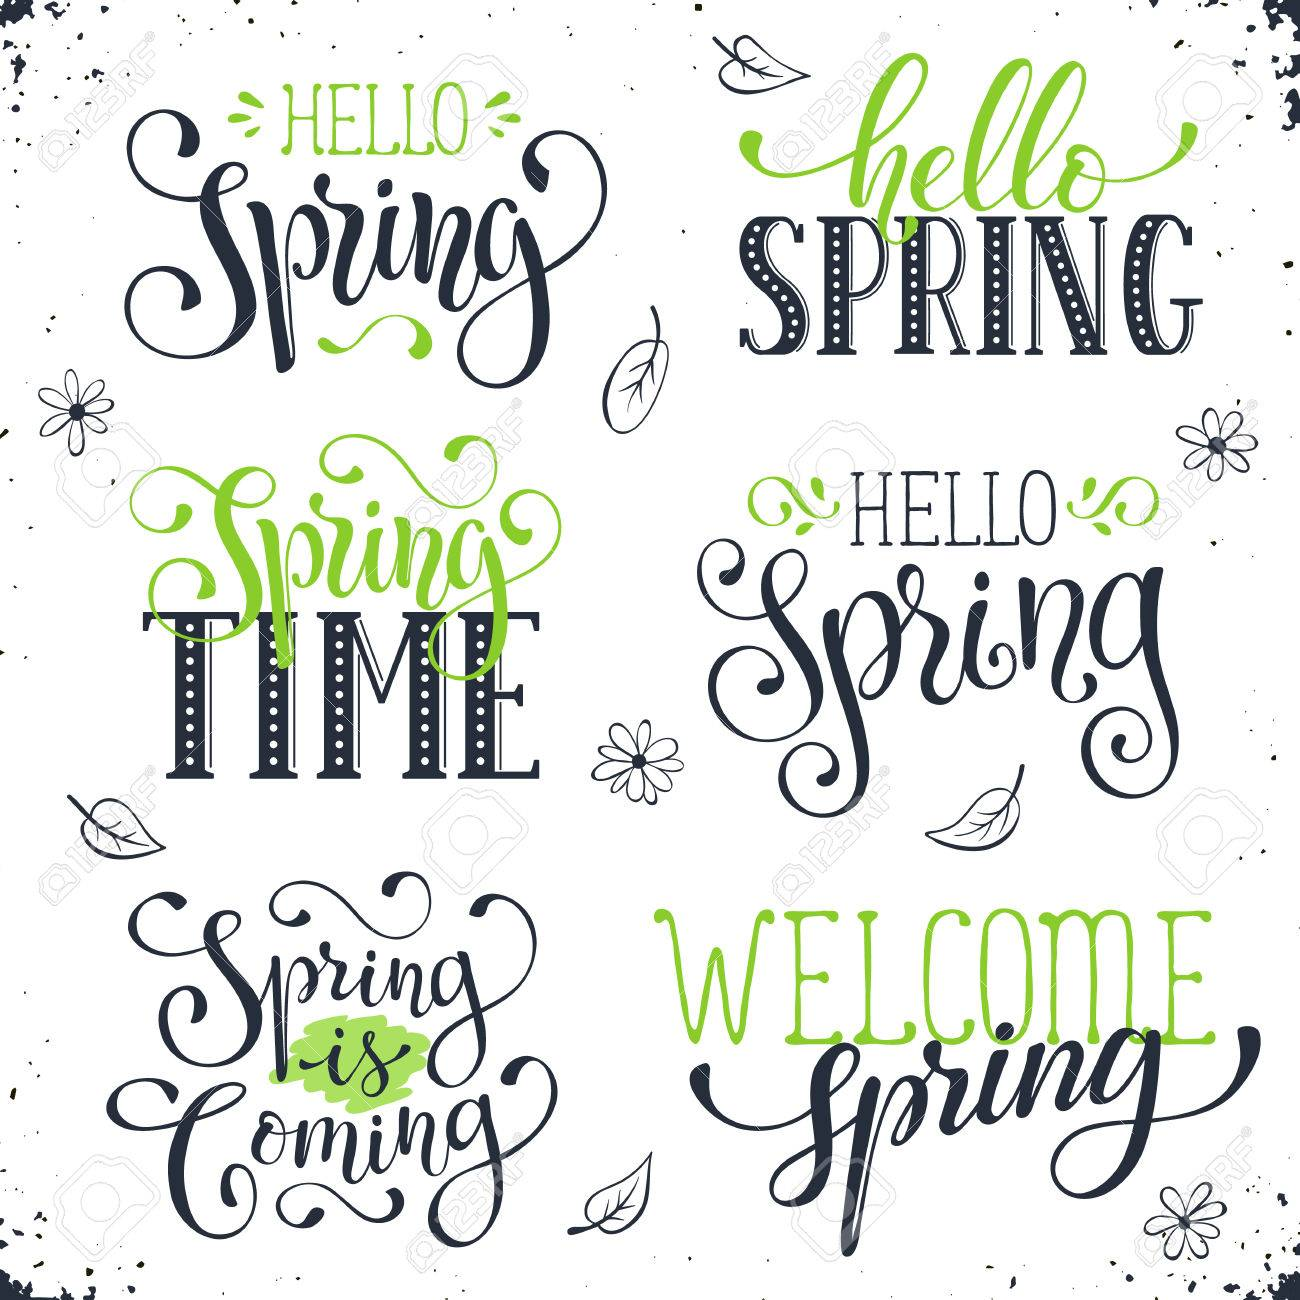 Hand written spring time phrases in black and green greeting hand written spring time phrases in black and green greeting card text templates isolated on m4hsunfo